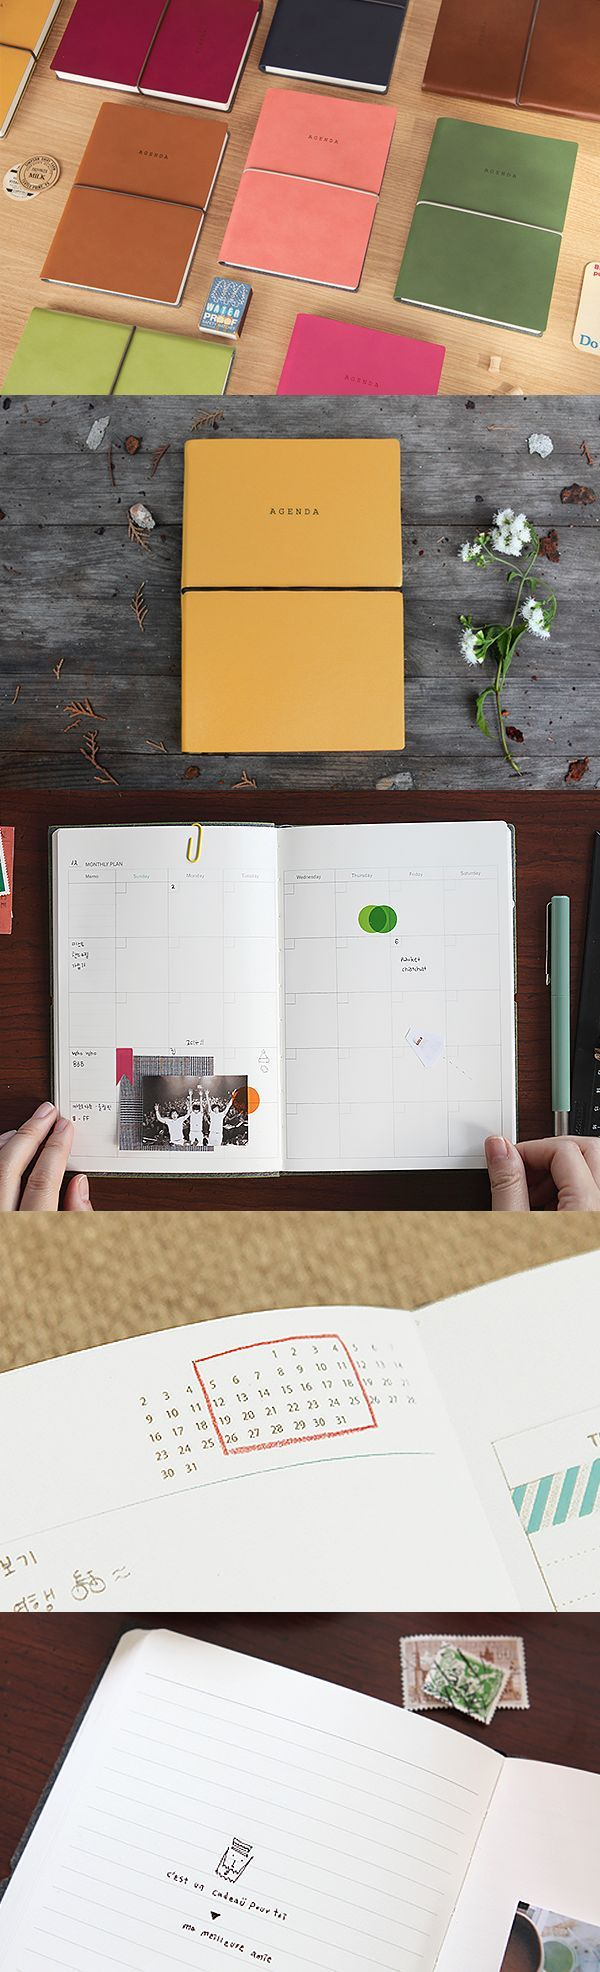 """Get more done with this beautiful large agenda scheduler. You can organize your time yearly, monthly, and weekly. This dateless planner allows you to create your own calendar from scratch and fill in the dates yourself..start whenever! Also includes 6 pages of world maps, 52 blank and lined pages for journaling, 10 pages of """"my favorite"""" lists, 4 pages of checklists, and a section for personal information. Comes in 6 adorable colors…"""